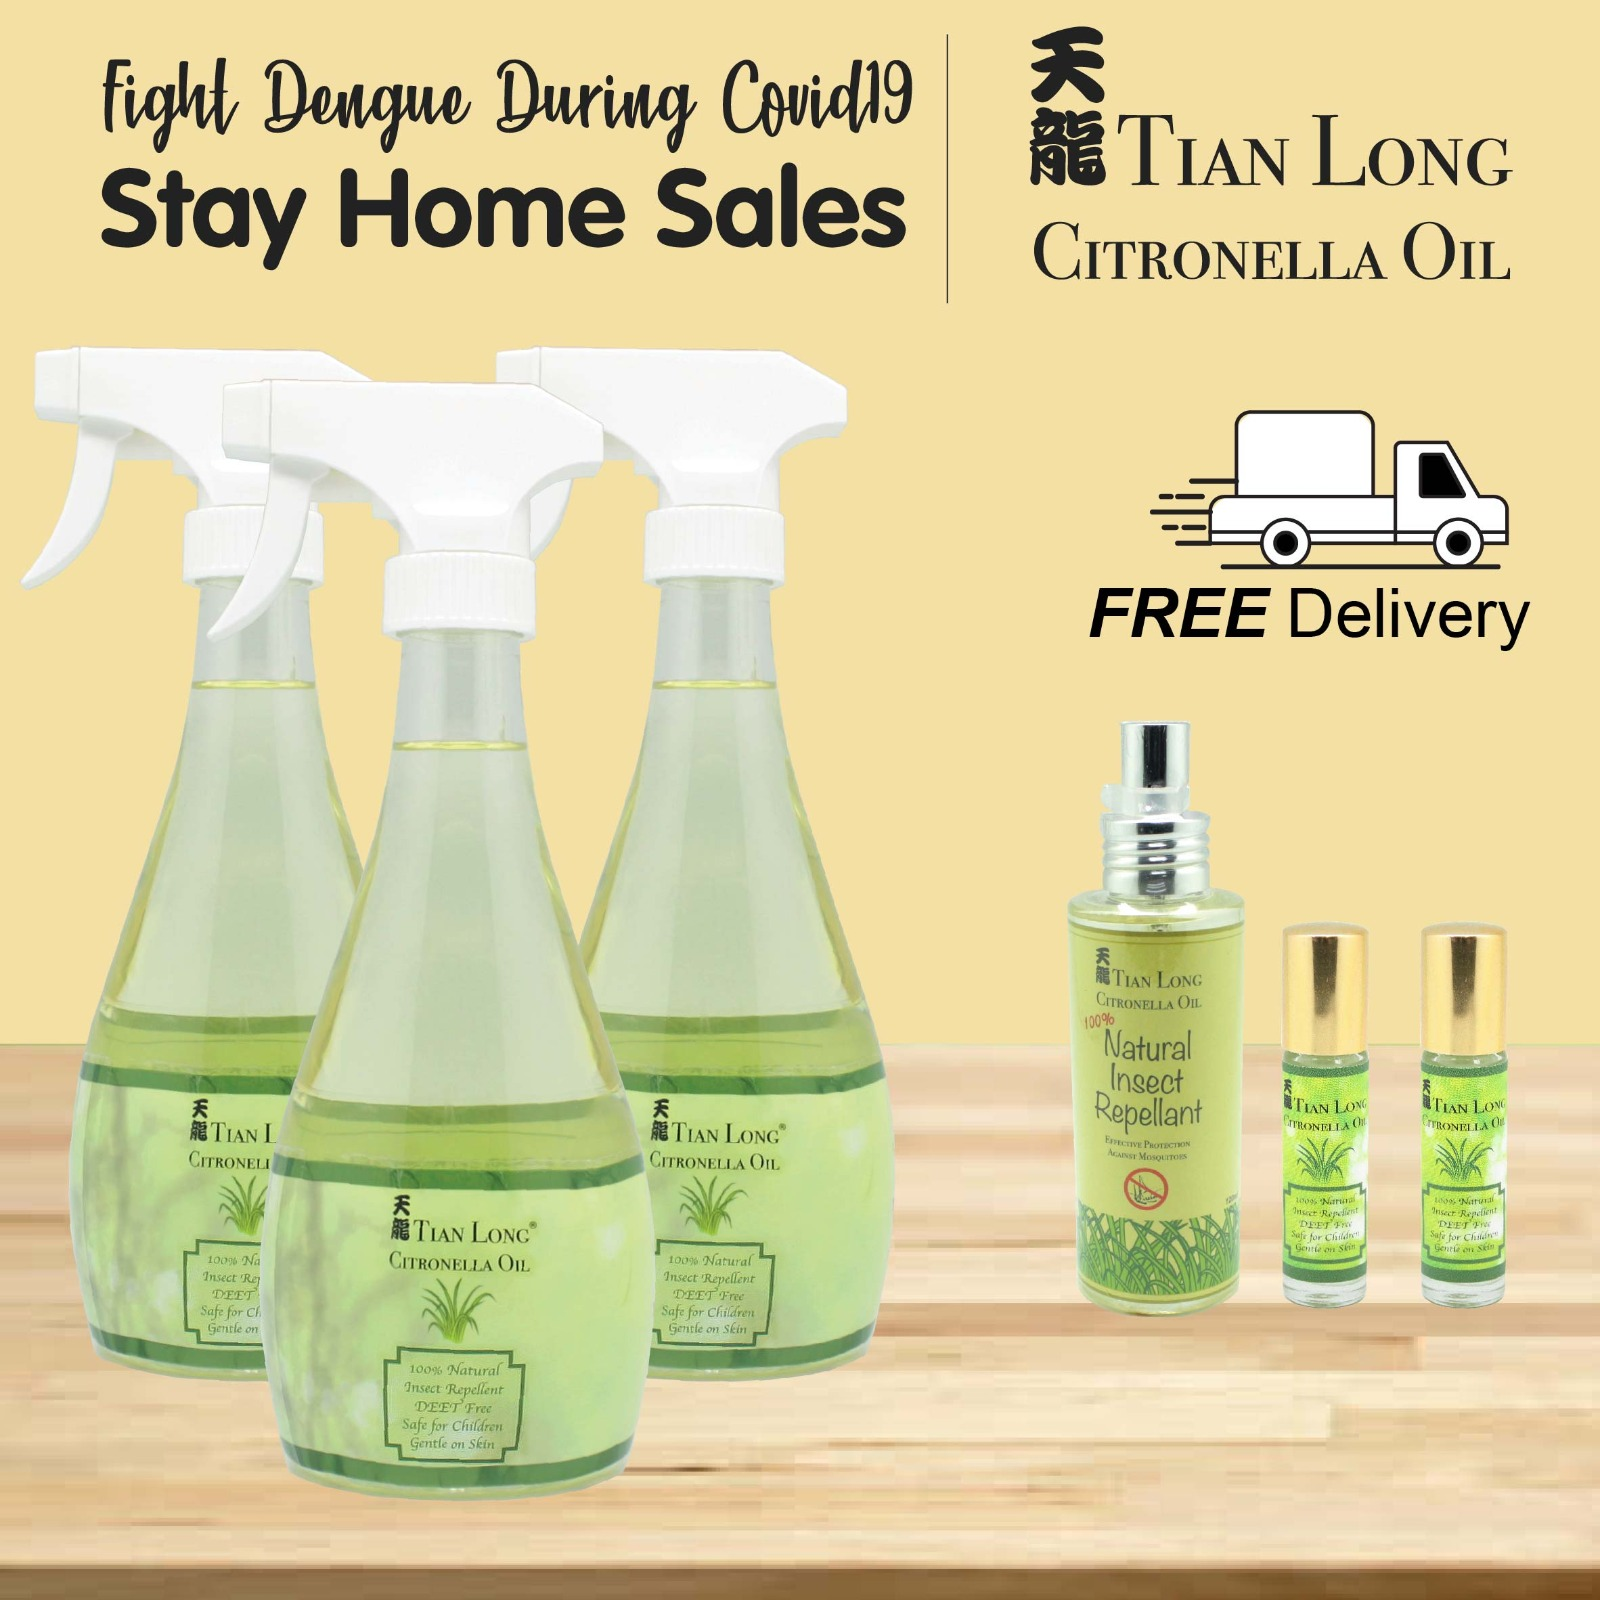 baby-fair Tian Long Citronella Oil 3 Bottle Fight Dengue Pack (Best Natural Insect Repellent)